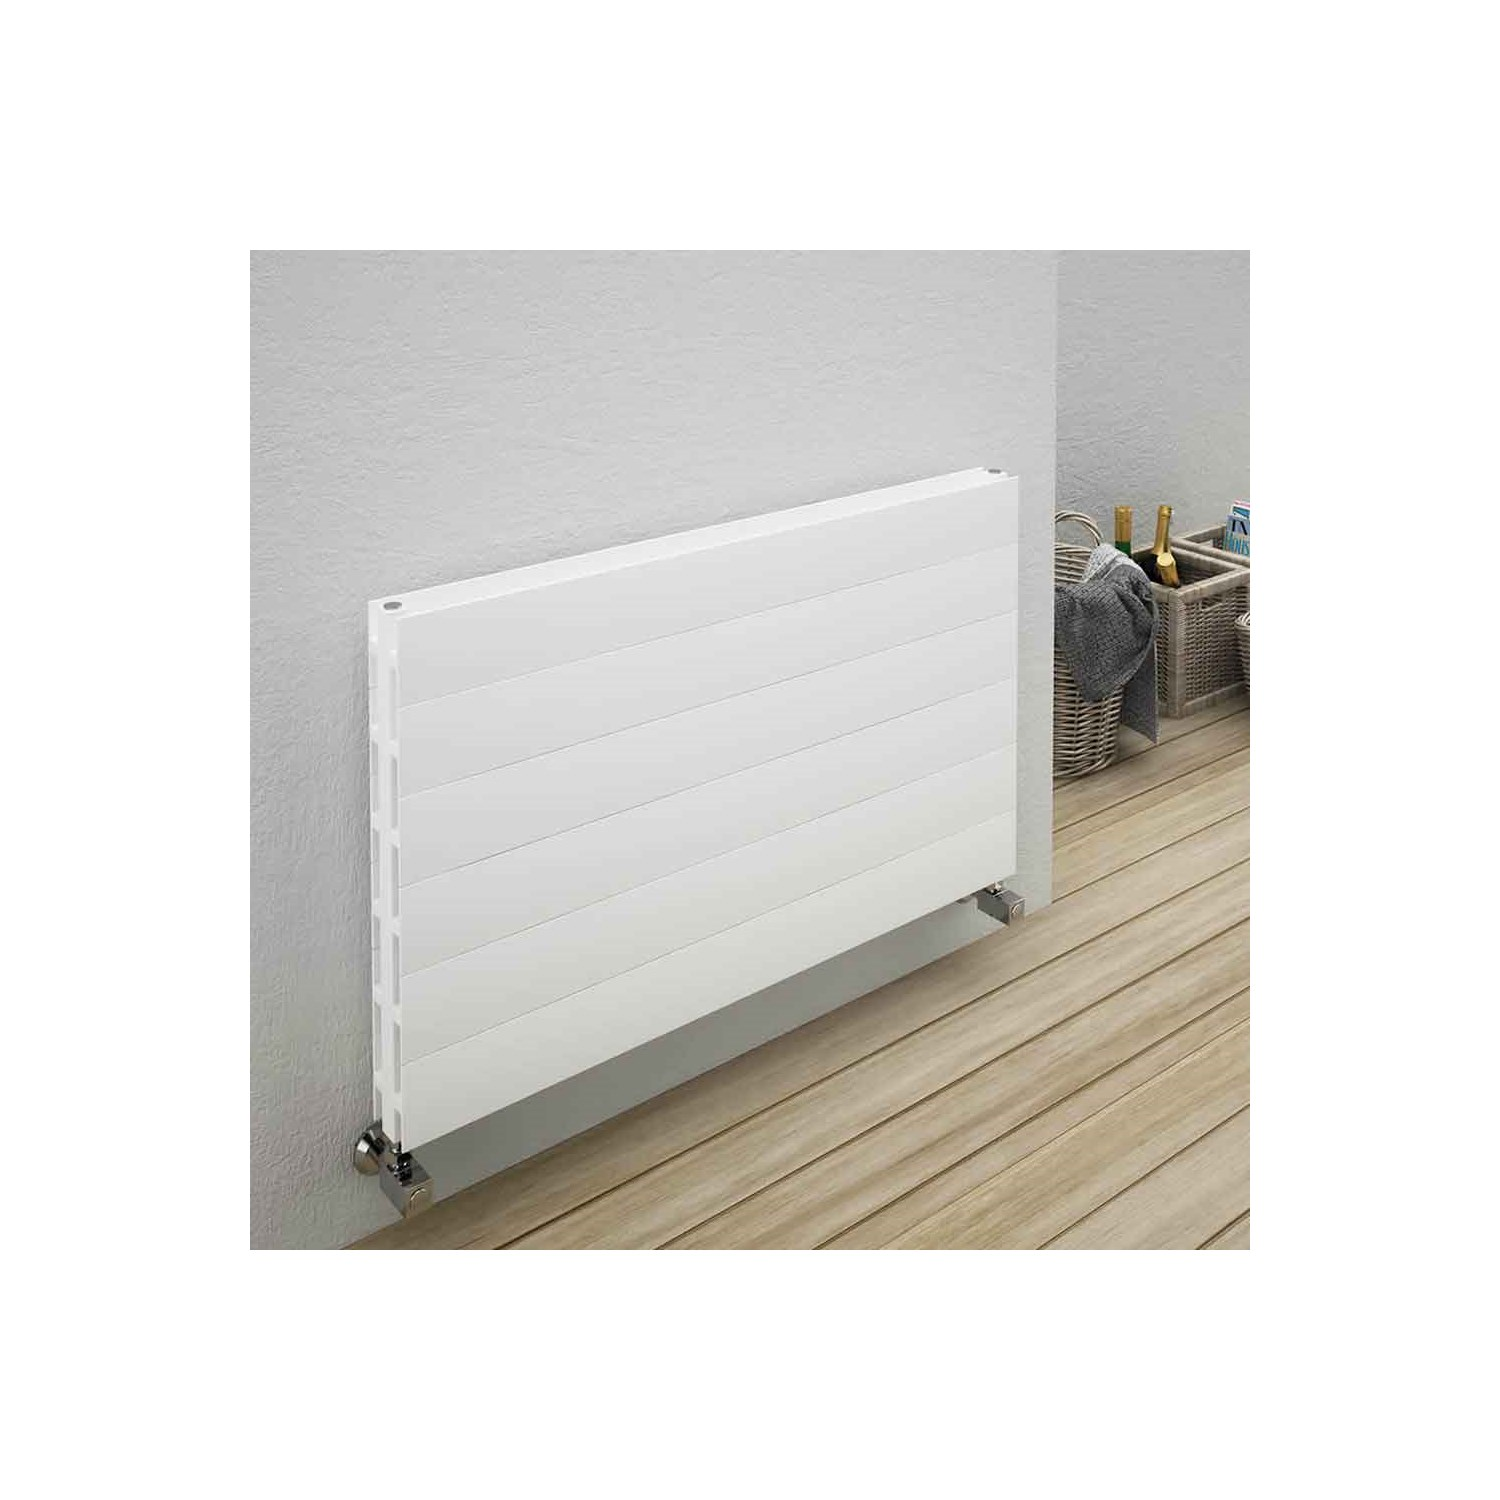 Design Convector Radiator.Flat Panel Radiators Single Double Radiators Only